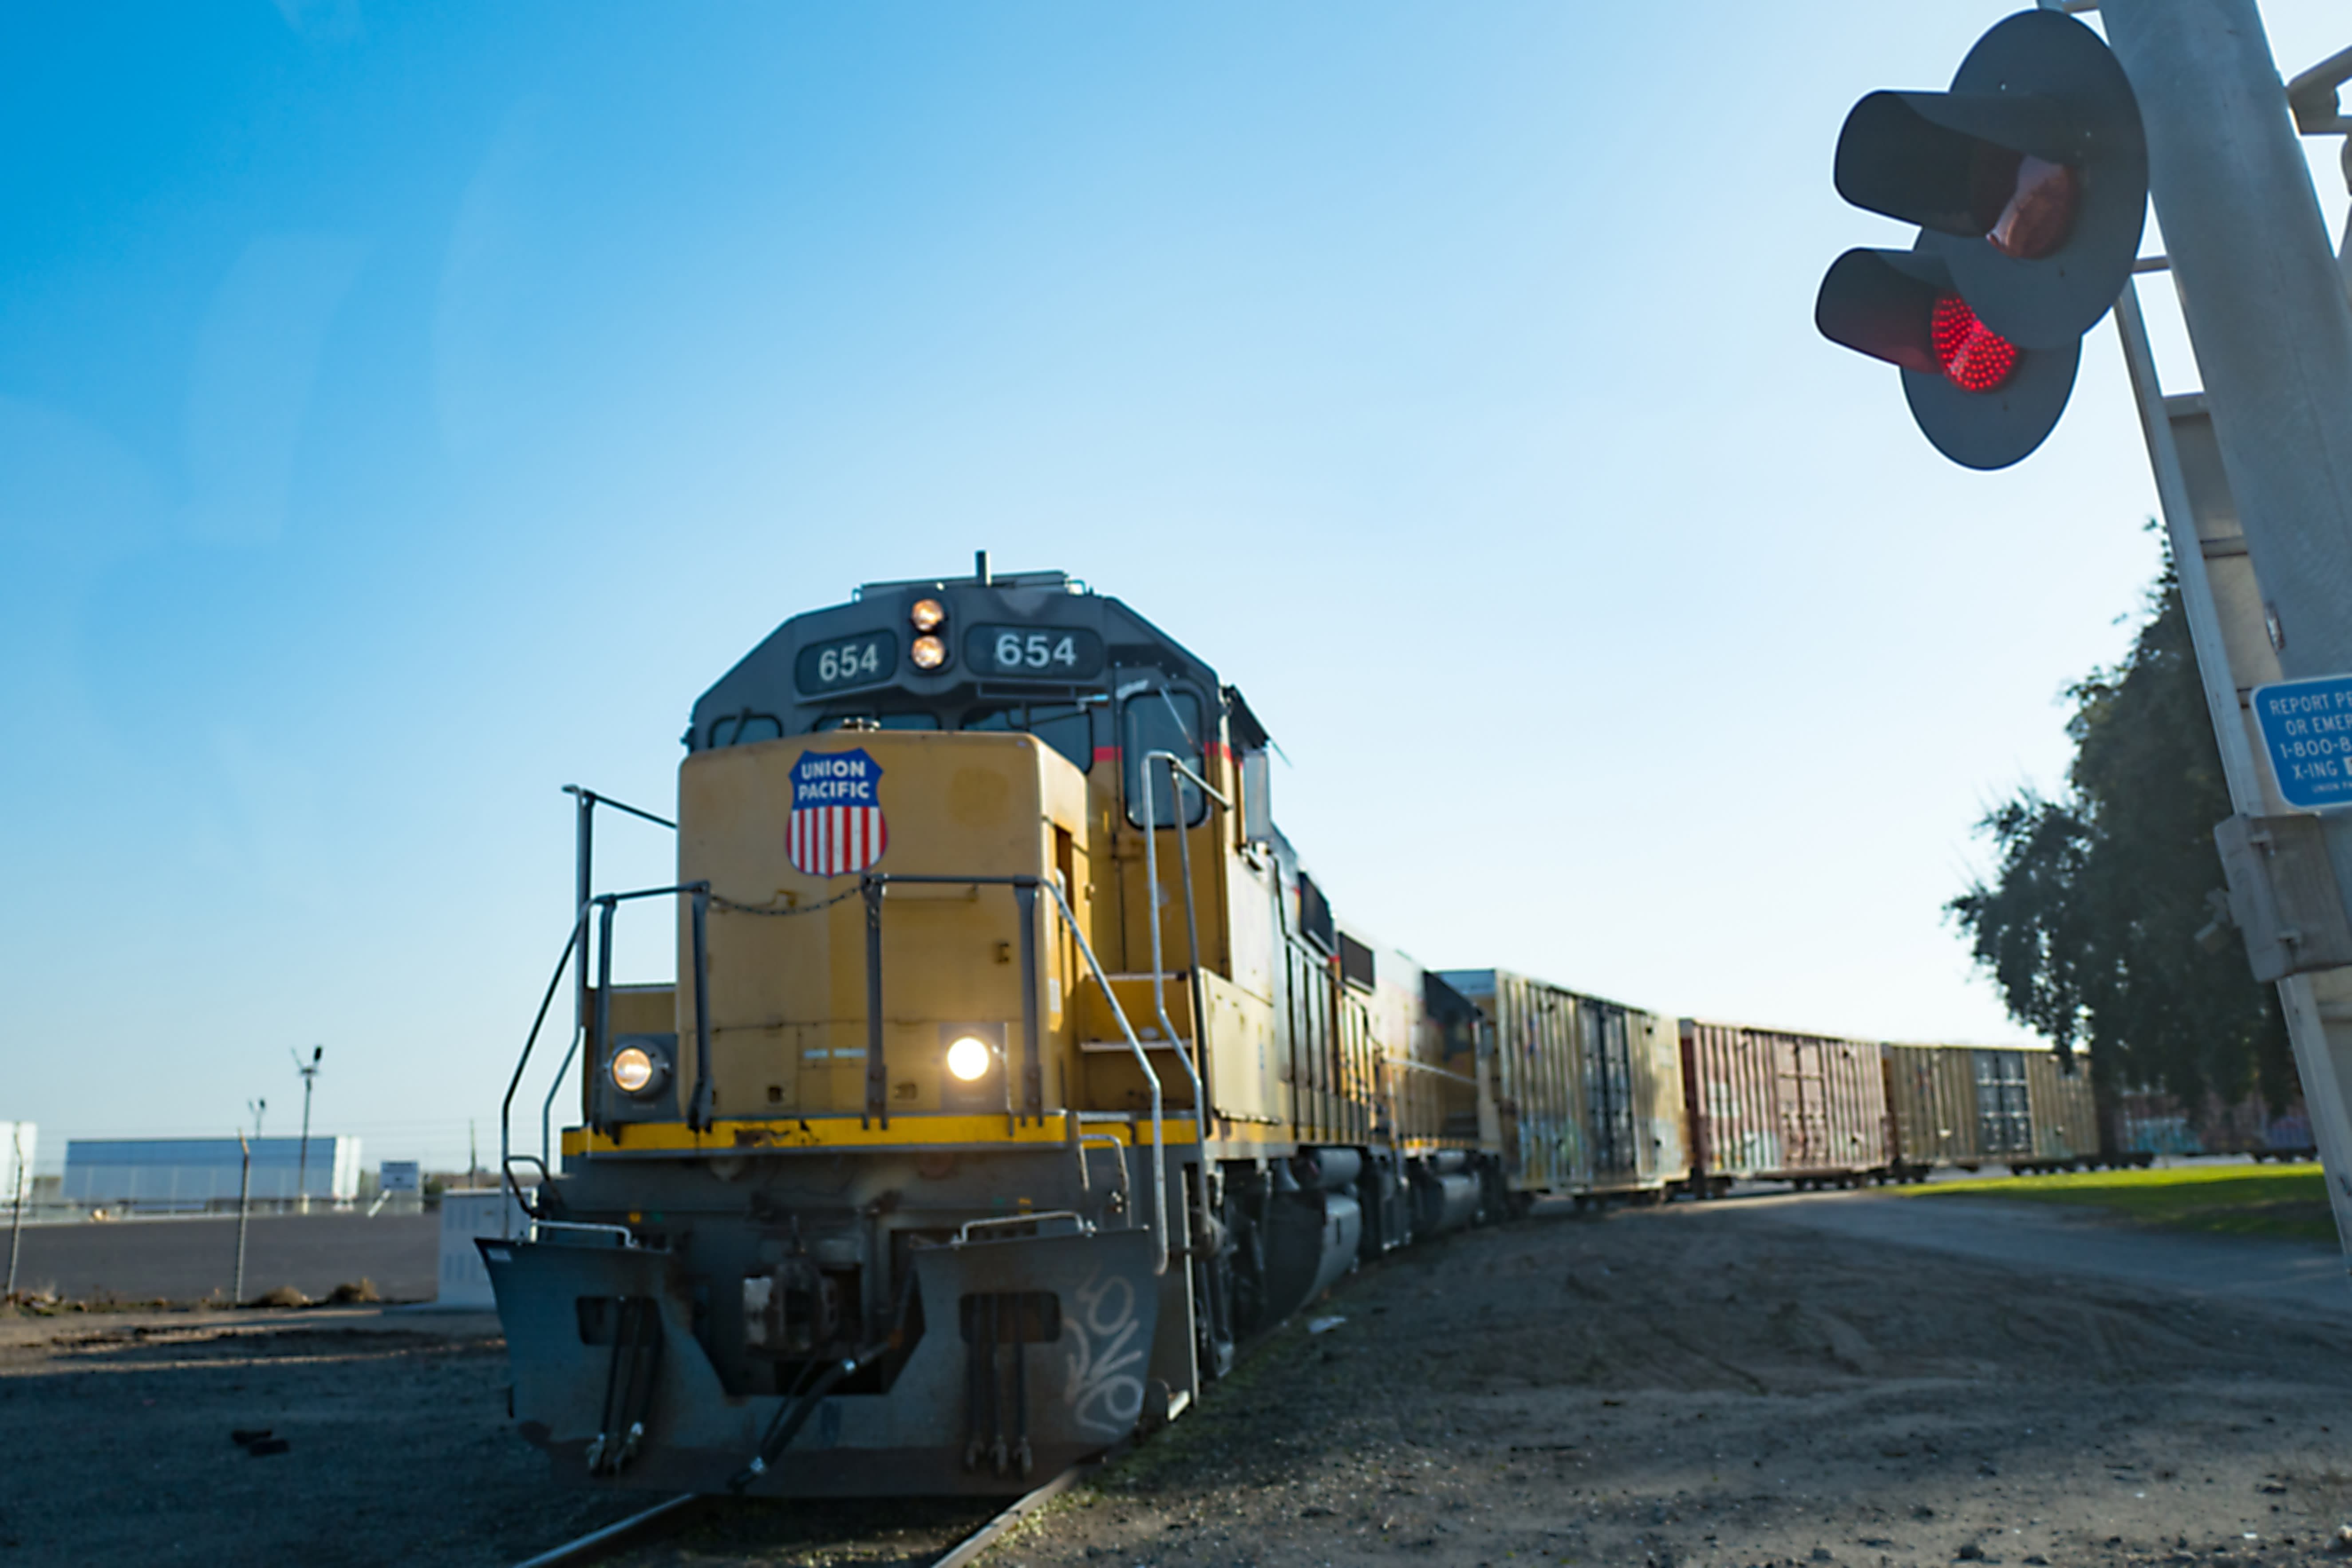 Union Pacific, PepsiCo and others could see their sales take a hit in a US-Mexico trade war